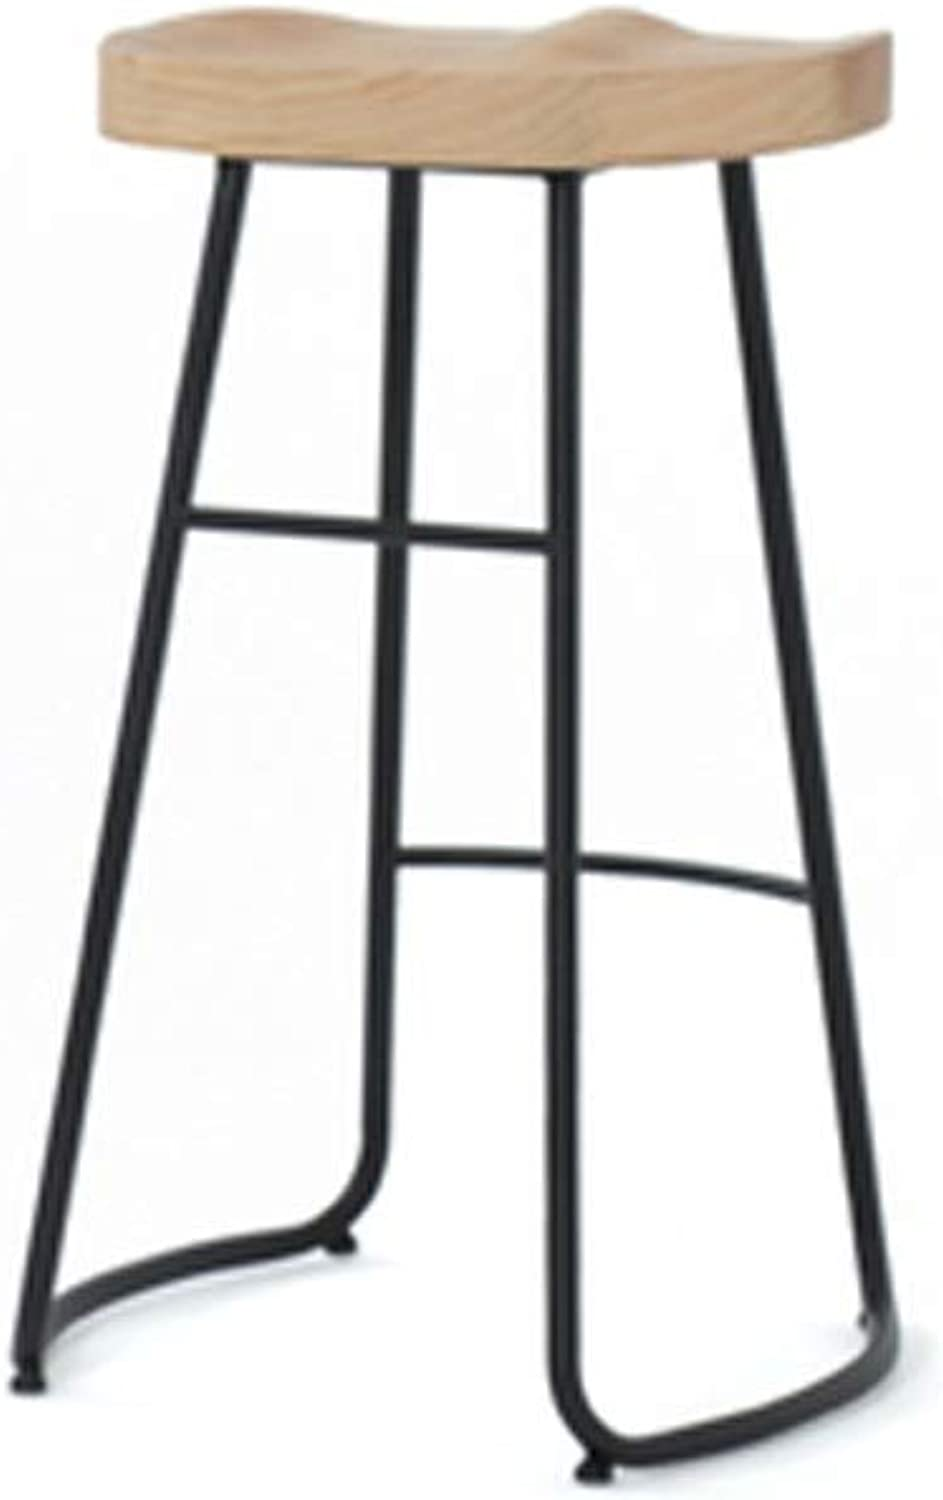 Barstool Bar Stool, Simple Modern Solid Wood high stools Cafe bar Wrought Iron 3 Sizes (Size   65CM)